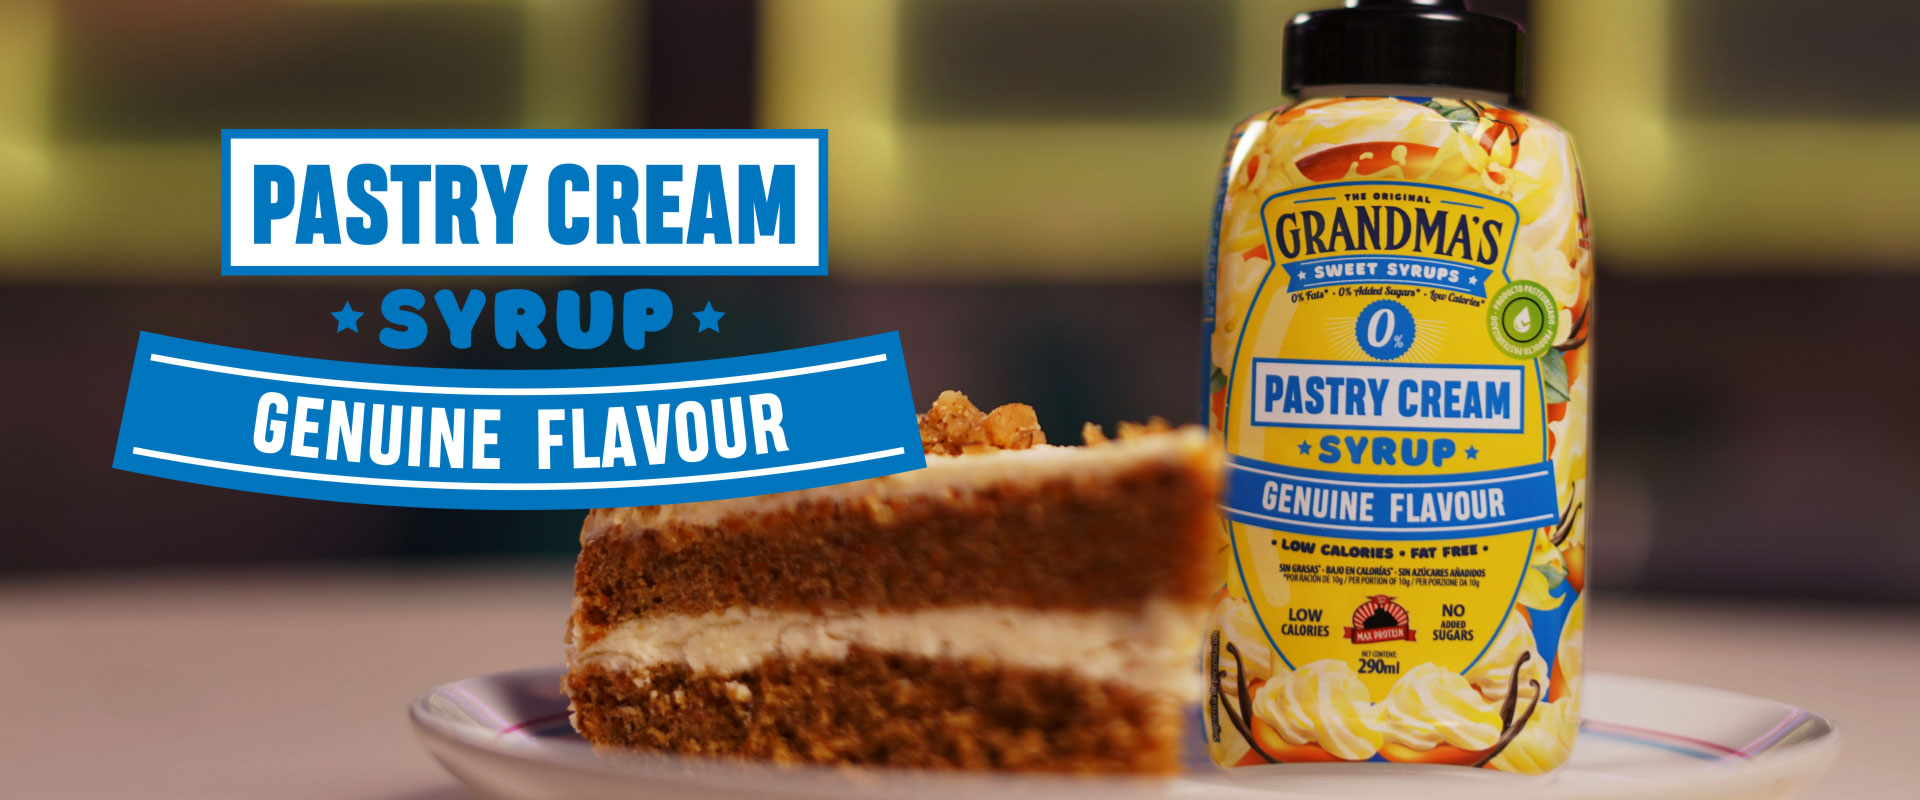 PASTRY CREAM SYRUP